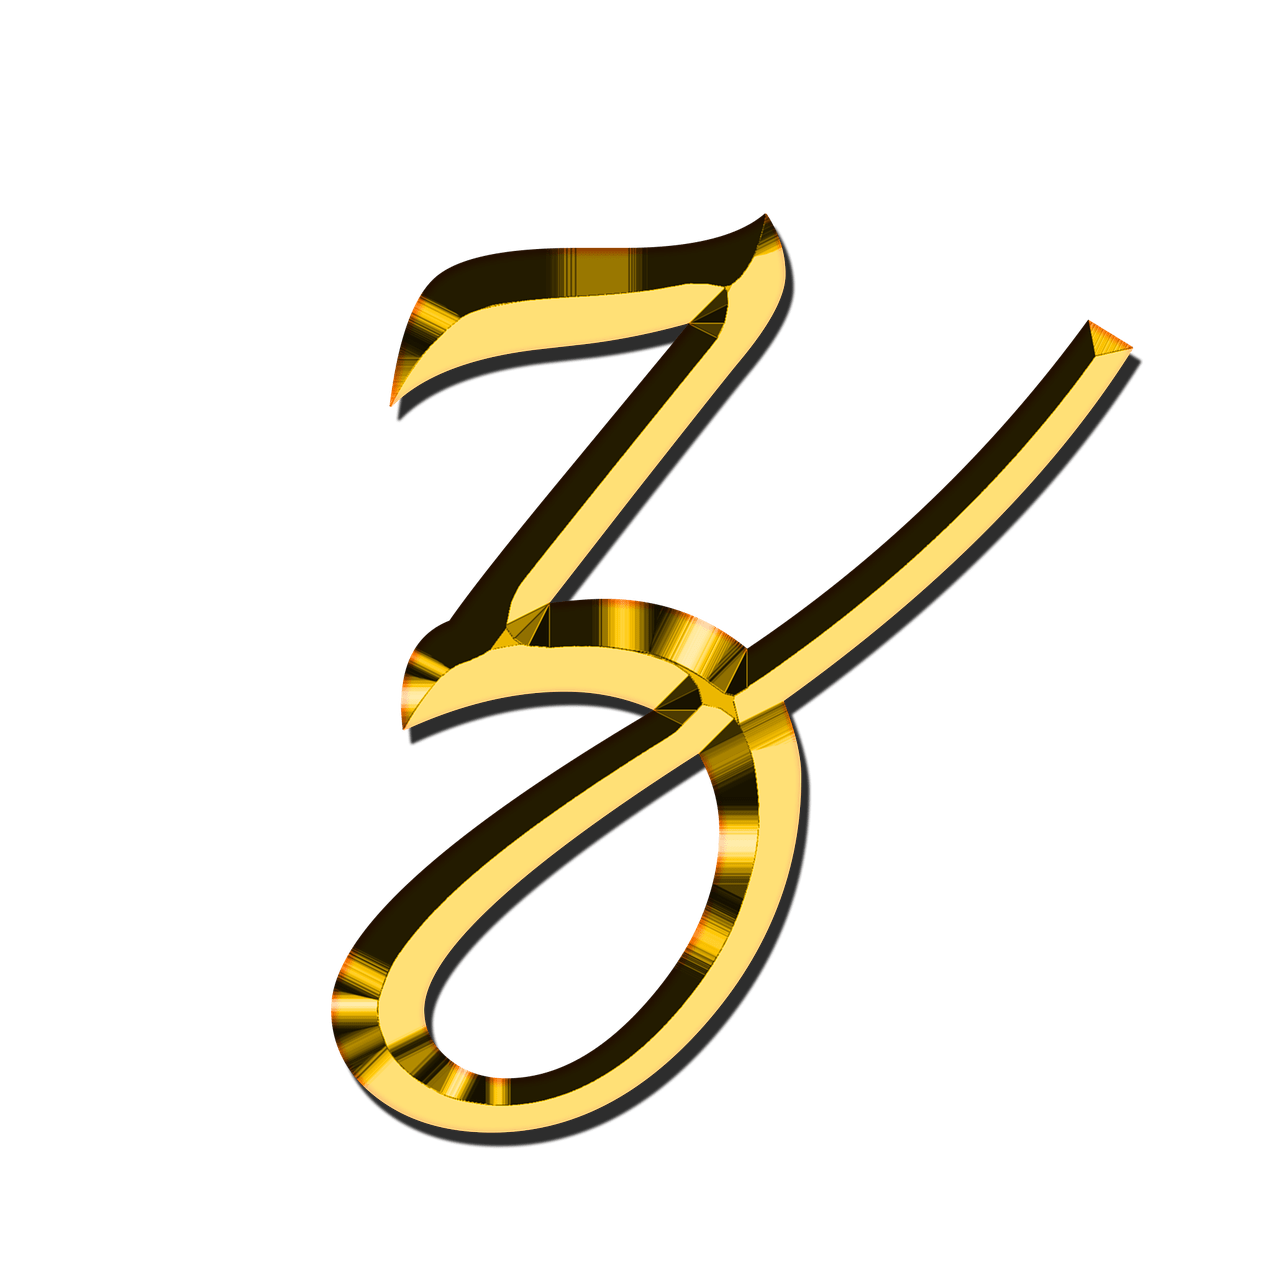 Transparent z gold. Small letter png stickpng